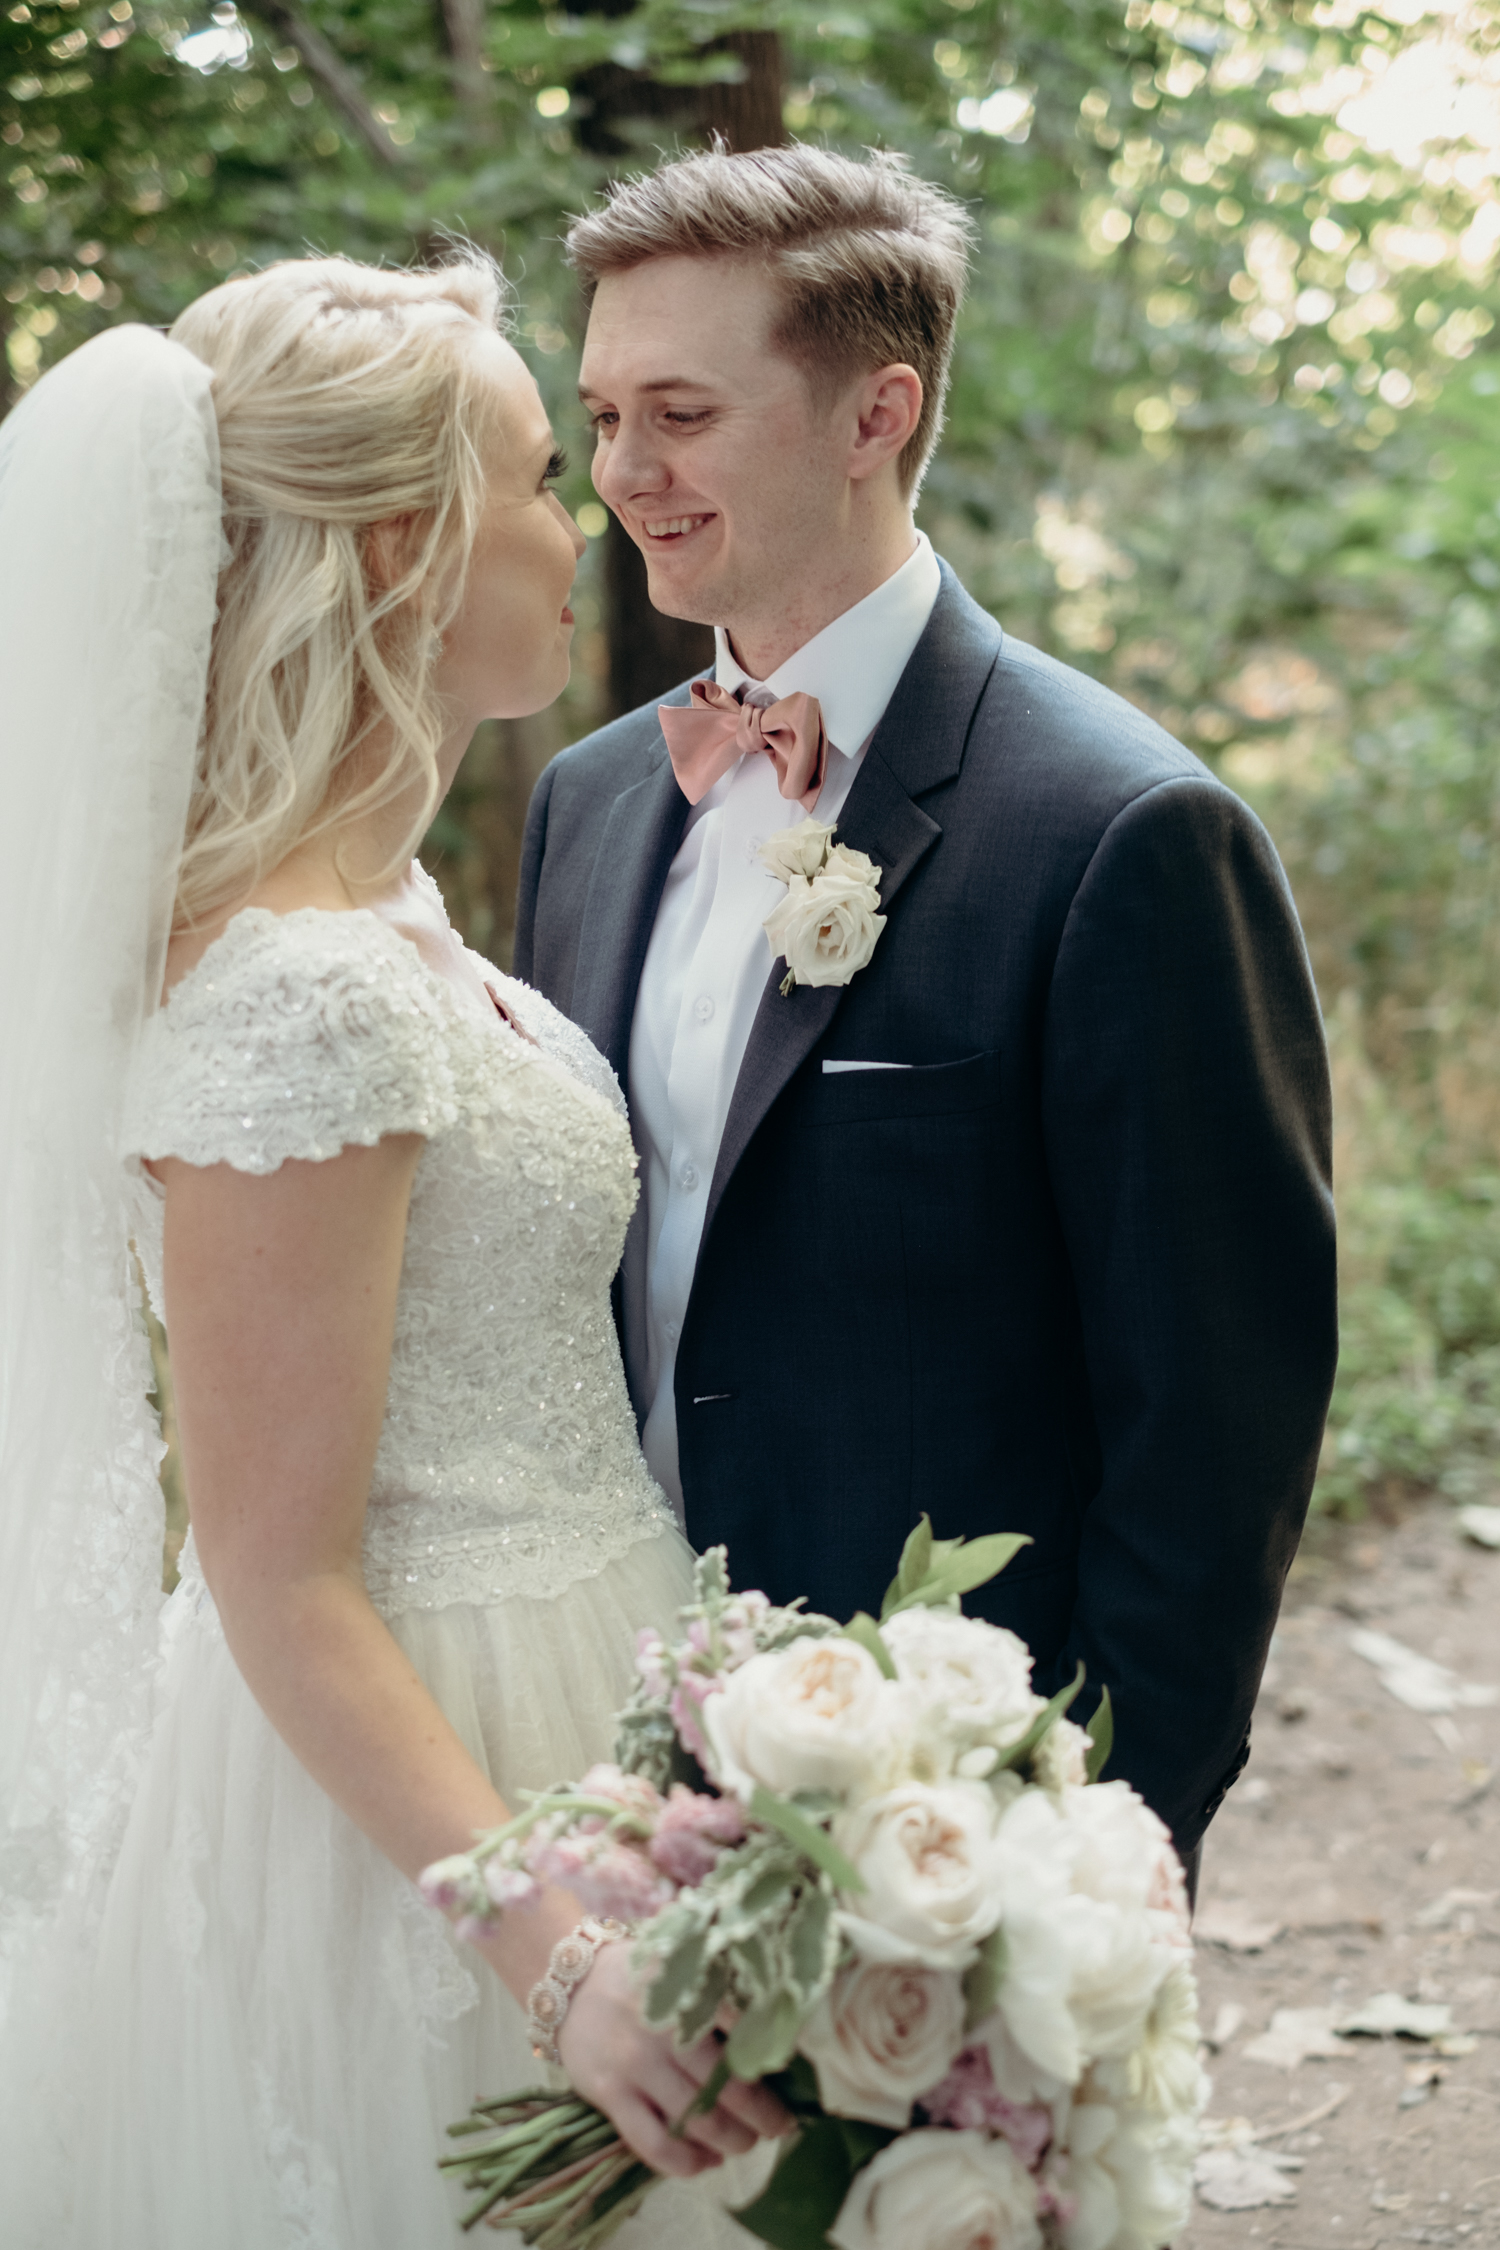 A bride carrying a bouquet of white and pink flowers looks into the eyes of her groom in a peach bowtie in the woods at Lansdowne Resort and Golf Course.